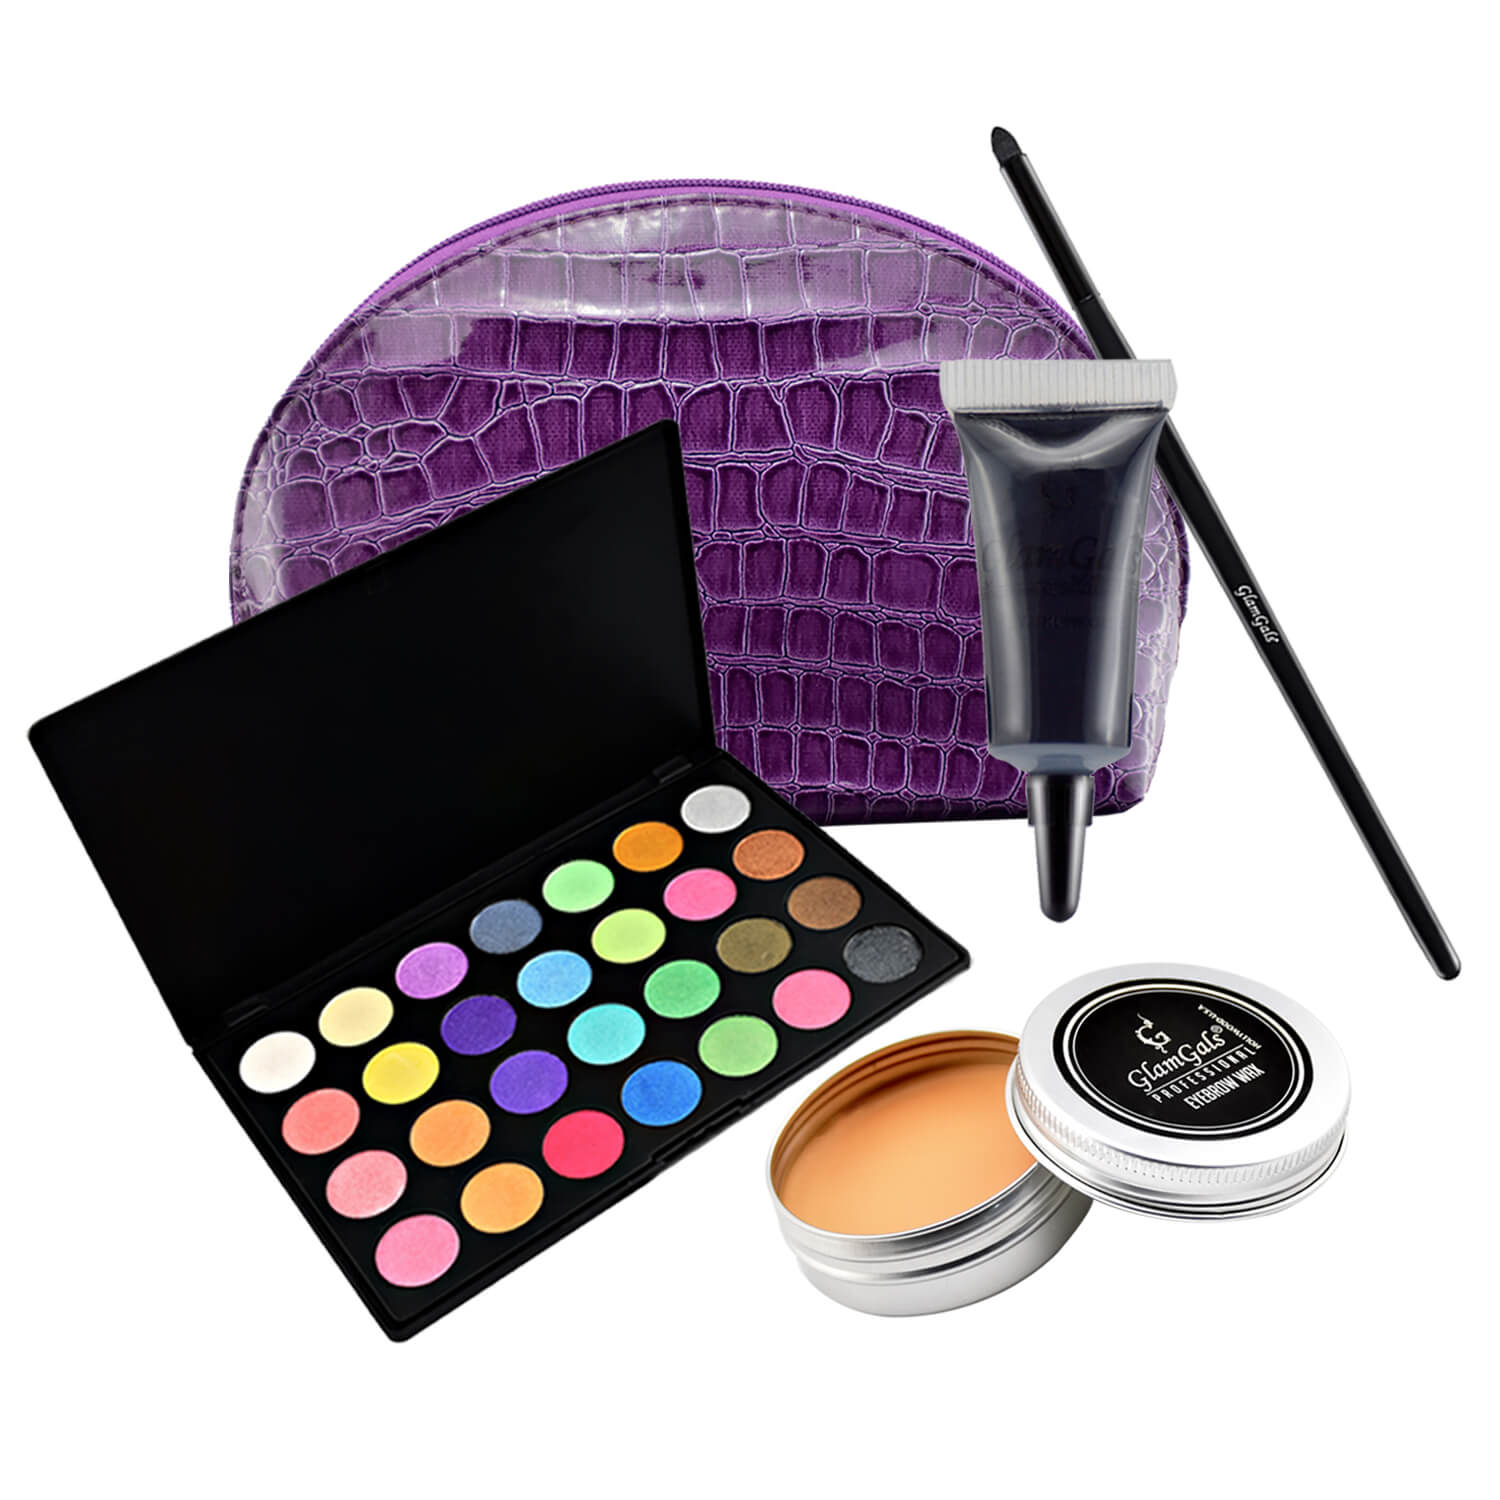 GlamGals Eye Makeup Essential Combo set (Pack of 4) with Free Pouch